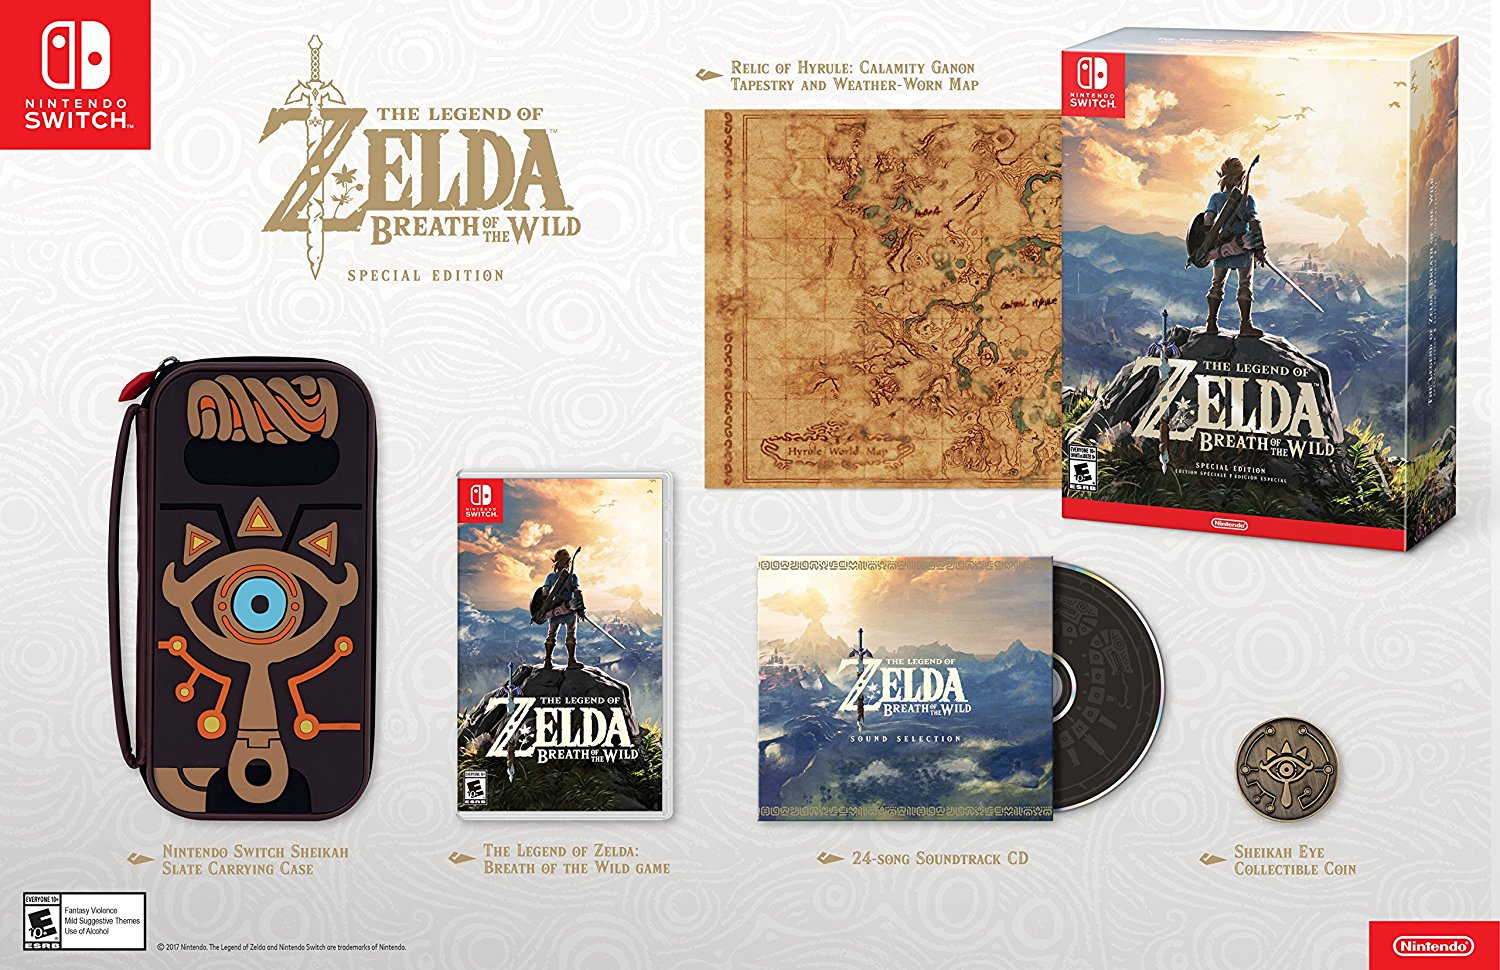 Nintendo Switch The Legend of Zelda Breath of the Wild Special Edition